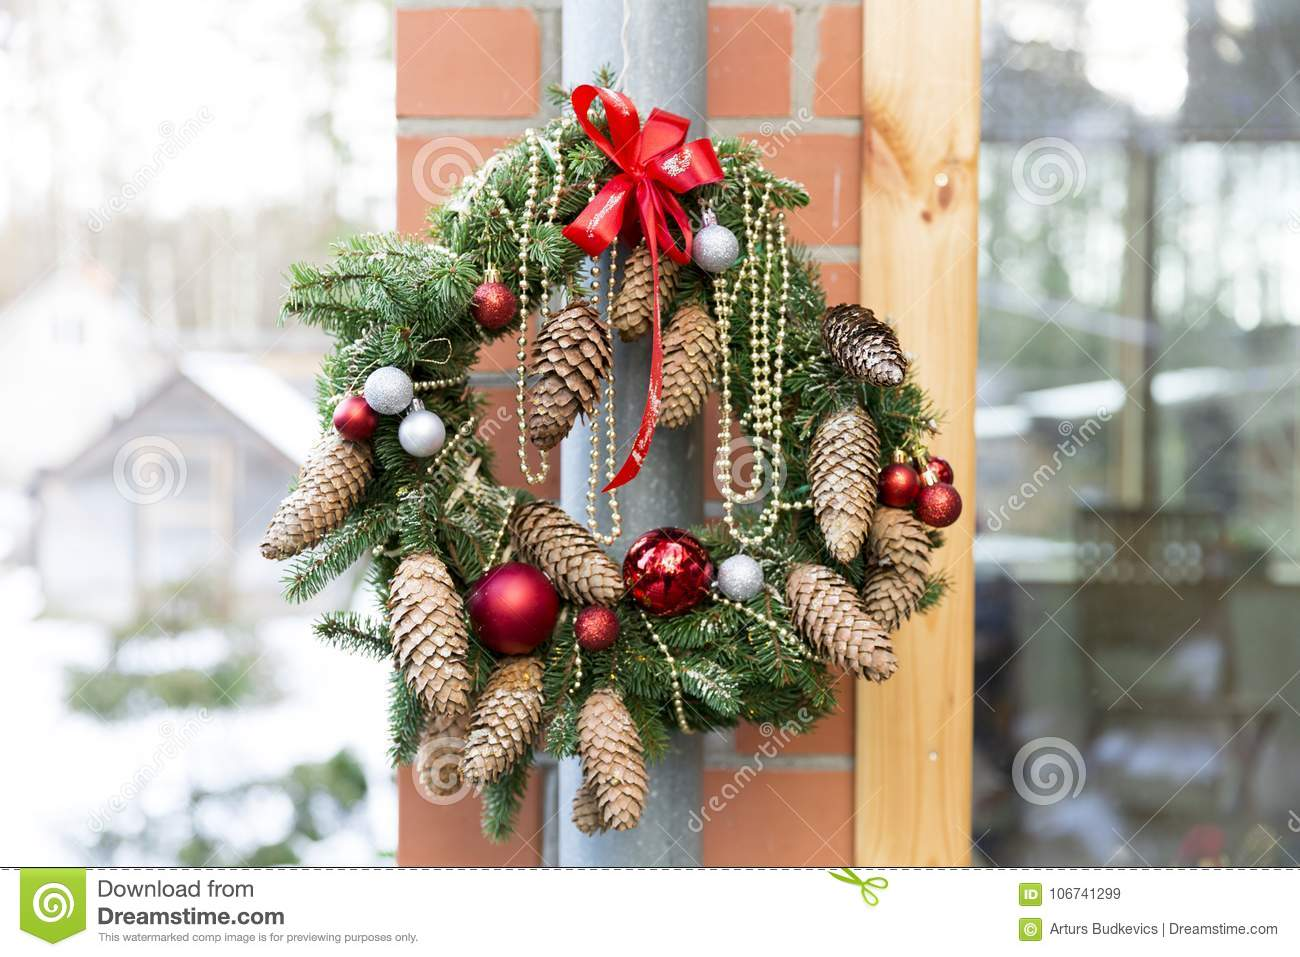 Christmas Door Wreath With Pines And Christmas Decorations Stock